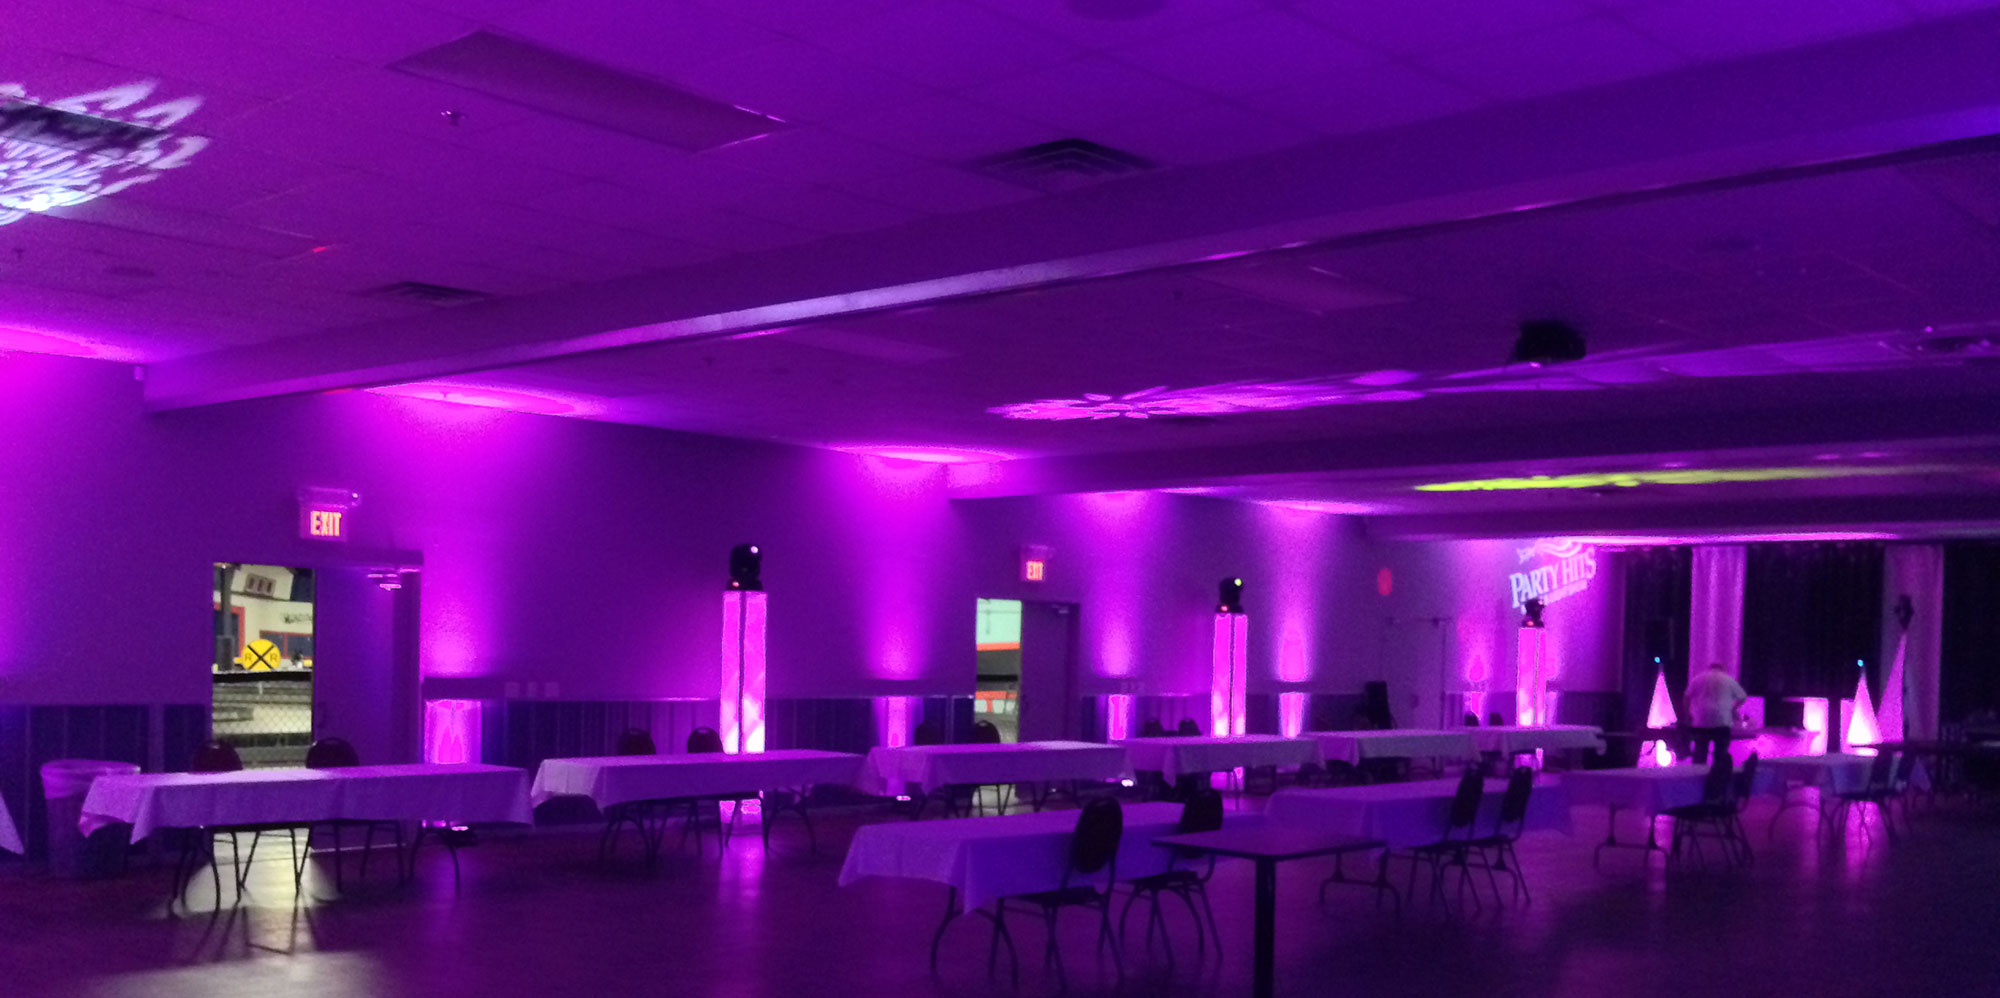 Purple Uplighting - Party Hits Music and Light Show - Wisconsin DJ Dance Weddings Events